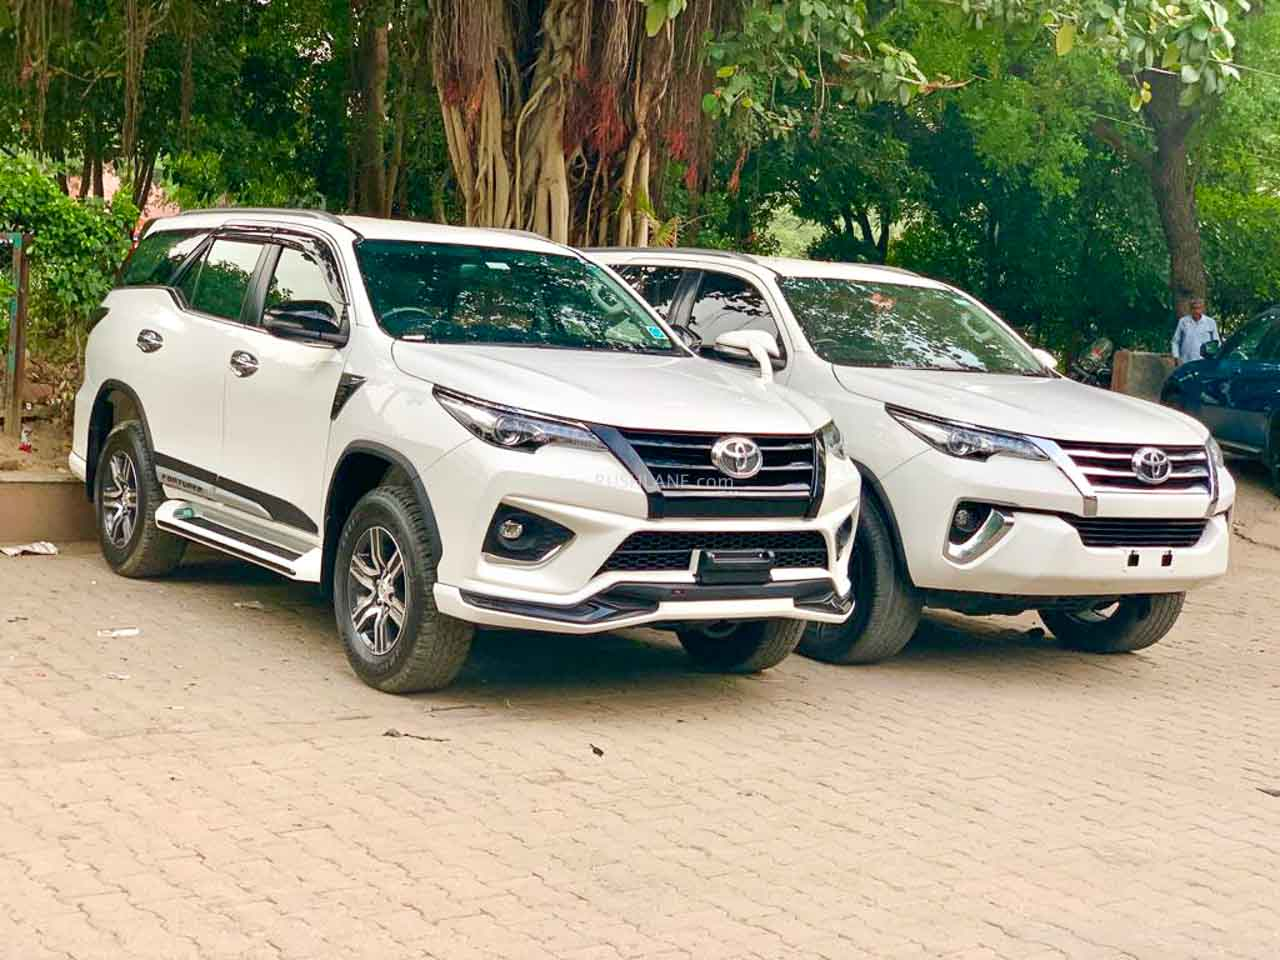 Toyota Fortuner Gets A Flashy Makeover With TRD Sportivo Body Kit